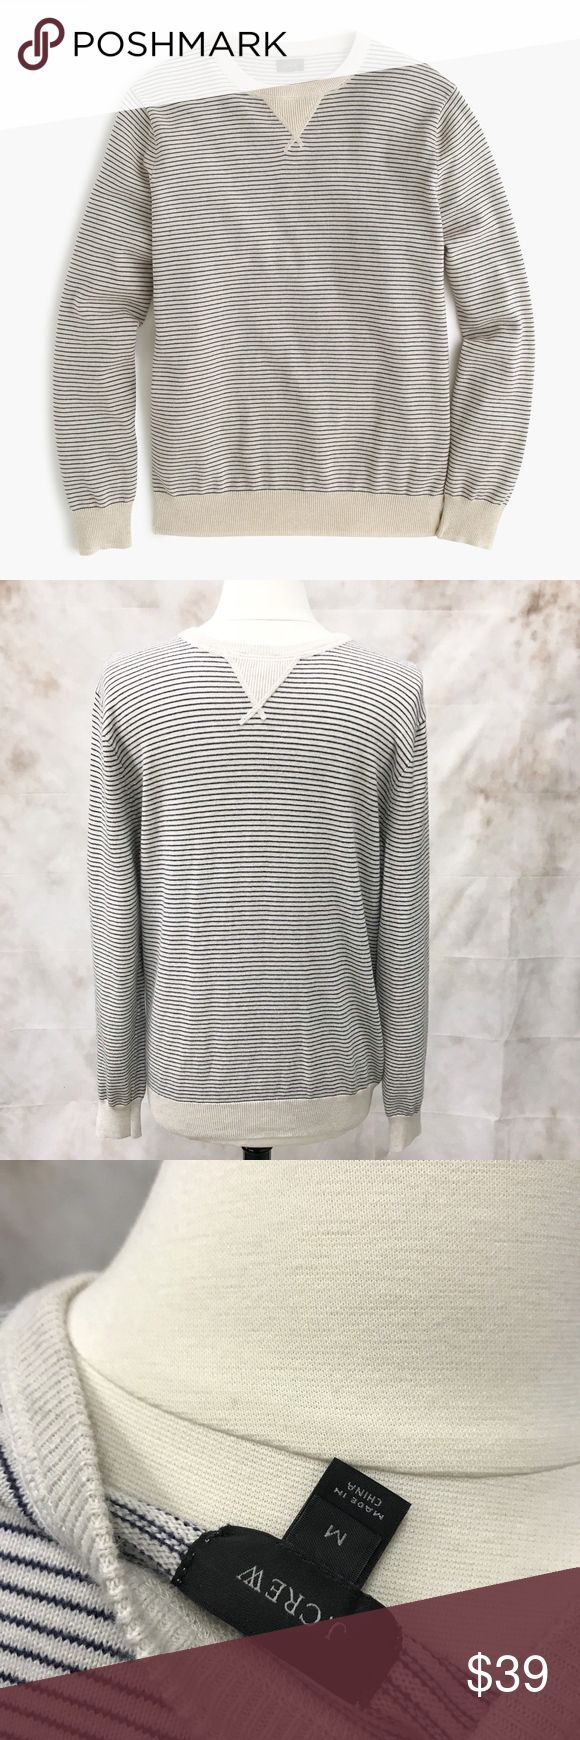 """J. CREW PINSTRIPE NAUTICAL SWEATER cotton B9177 J. CREW PINSTRIPED NAUTICAL SWEATER  color blue ivory gray size medium length 26"""" chest laying flat 19"""" sleeve 30"""" from neck seam Pre-owned condition  No stains or damage. Lightly worn a few times Please view all pictures All measurements are approximate  DETAILS The classic sweatshirt you know and love, now with nautical-inspired stripes (which means it can sneak under the dress-code radar—it has the polish of a favorite sweater with the…"""